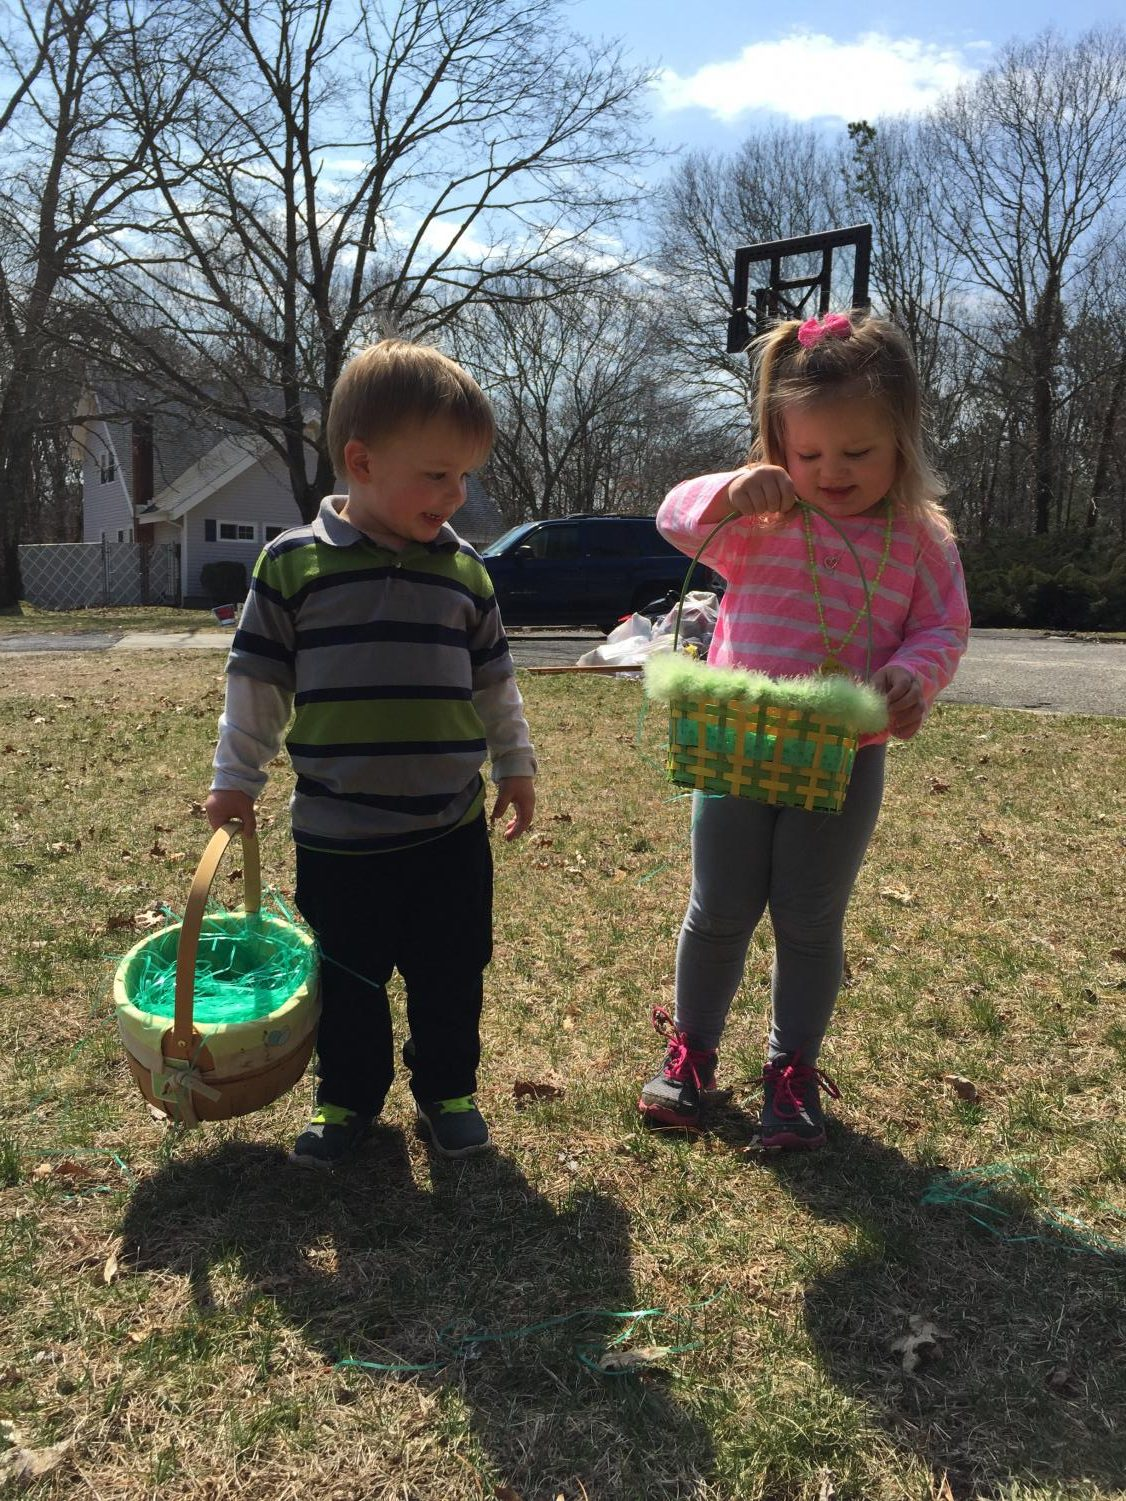 As kids, the Easter egg hunt was always the highlight of the season. Here are some more traditions that help make this season special.